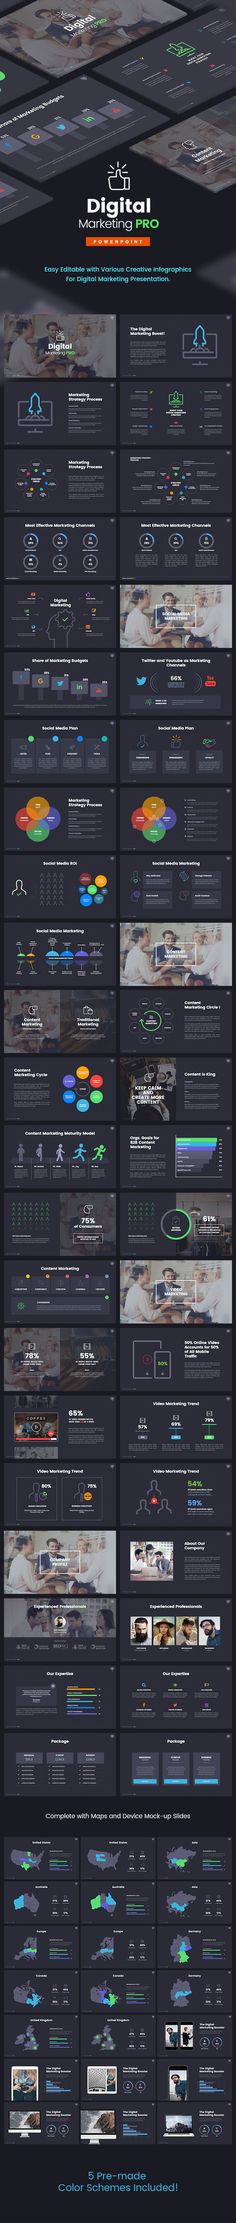 The Digital Marketing Pro - Powerpoint Template (PowerPoint Templates)